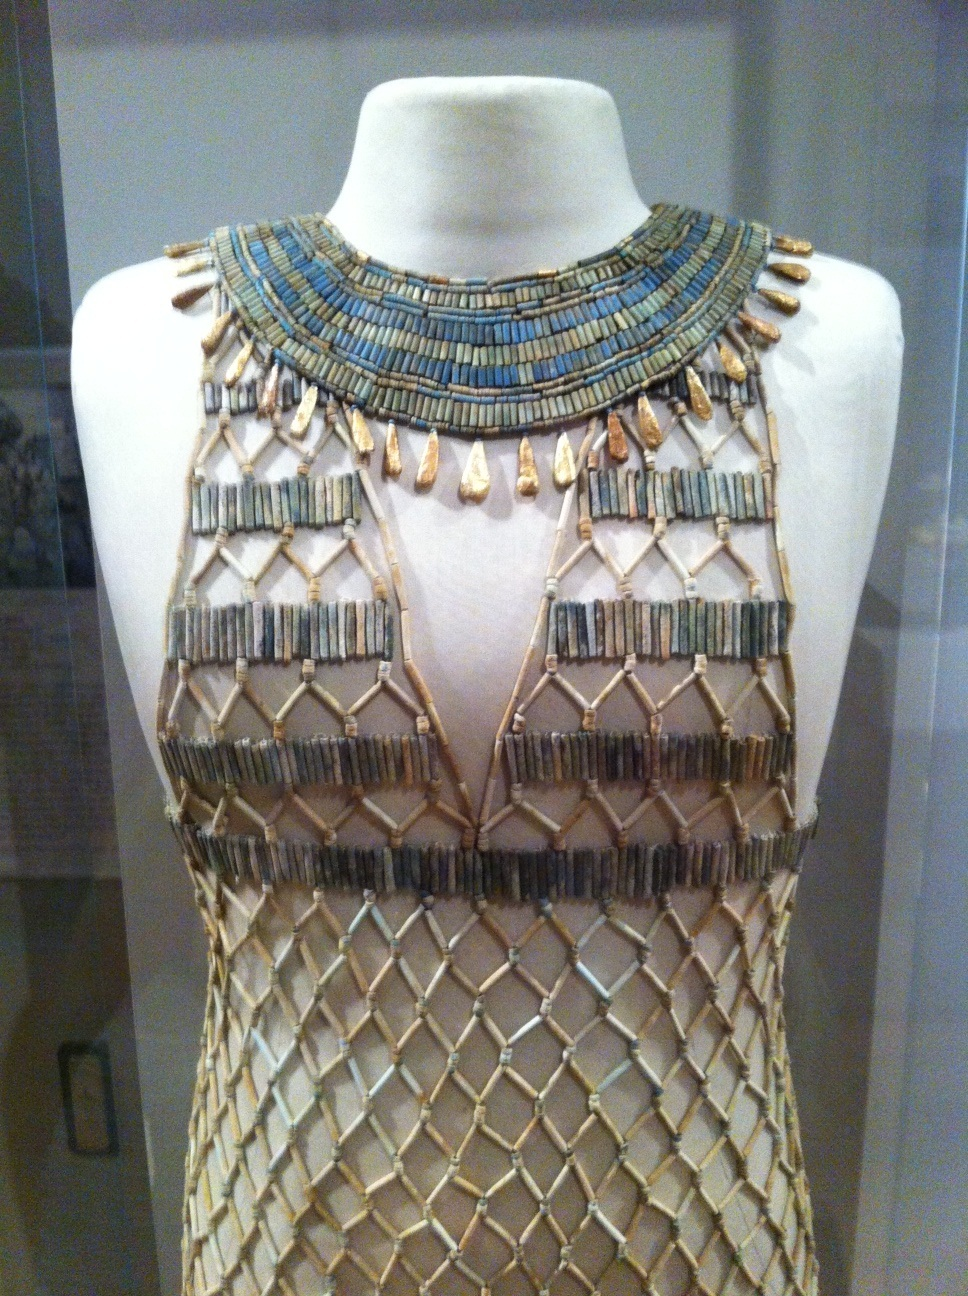 D   etail, bead-net dress and broad collar whose remains werefound during excavations ofthe tomb of a female interred at Gizaduring the reign of King Khufu, ca. 2500 BCE.Both pieces were reconstructed by Millicent Jick (1928-2010), a volunteer gallery instructor at the Museum of Fine Arts, Boston. The cylinder and diskbeads are Egyptian faience. The pendants on the broad collar are made of gold.Image courtesy Museum of Fine Arts, Boston.